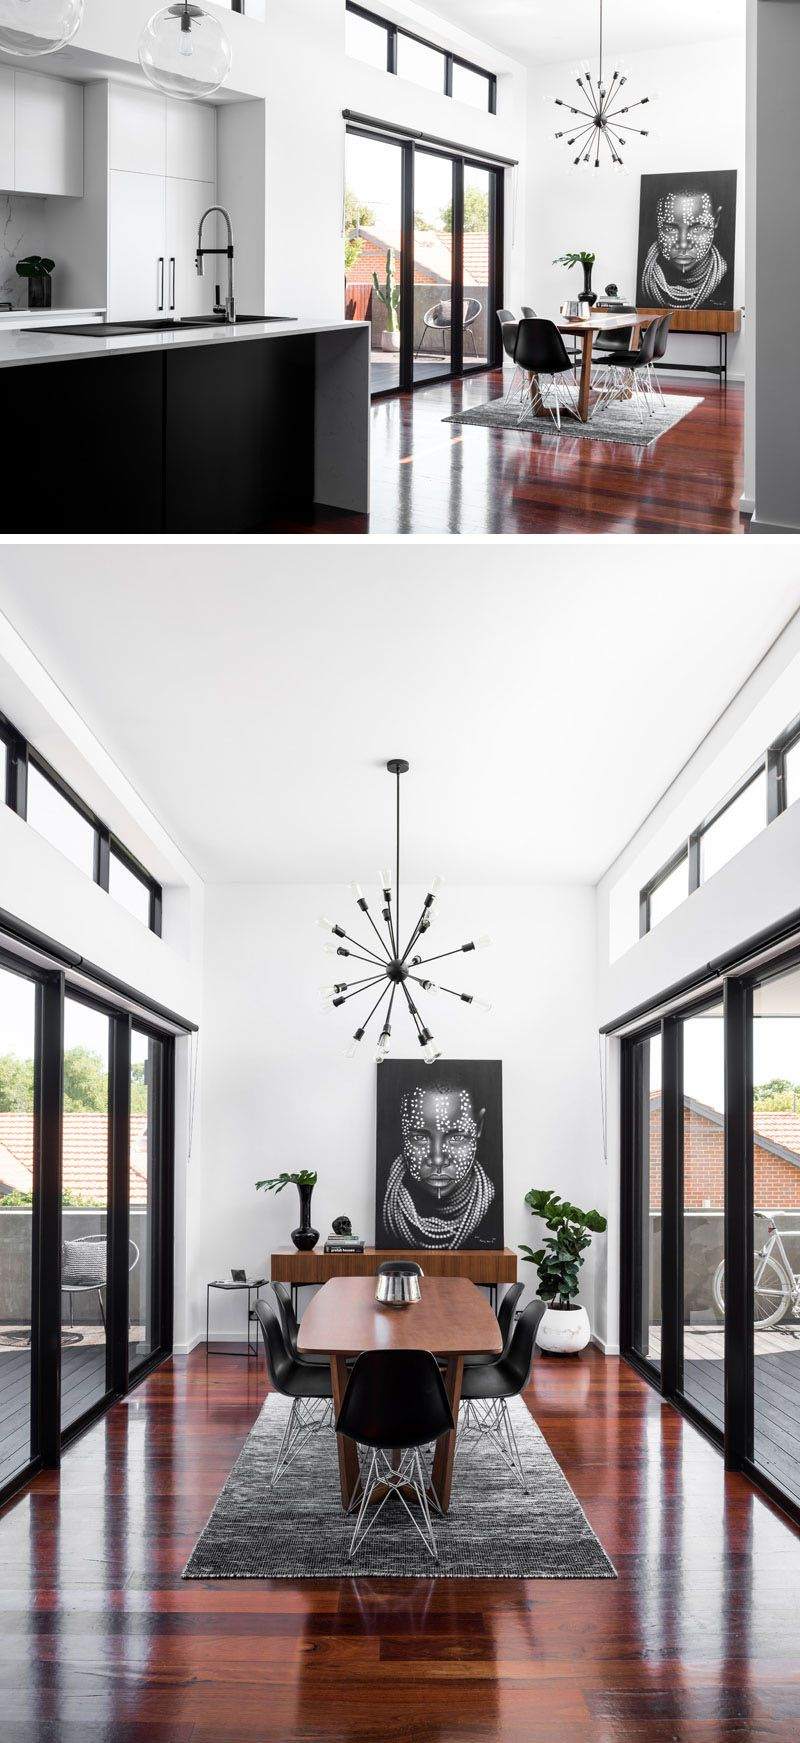 The Contemporary Renovation Of A 100 YearOld Home In